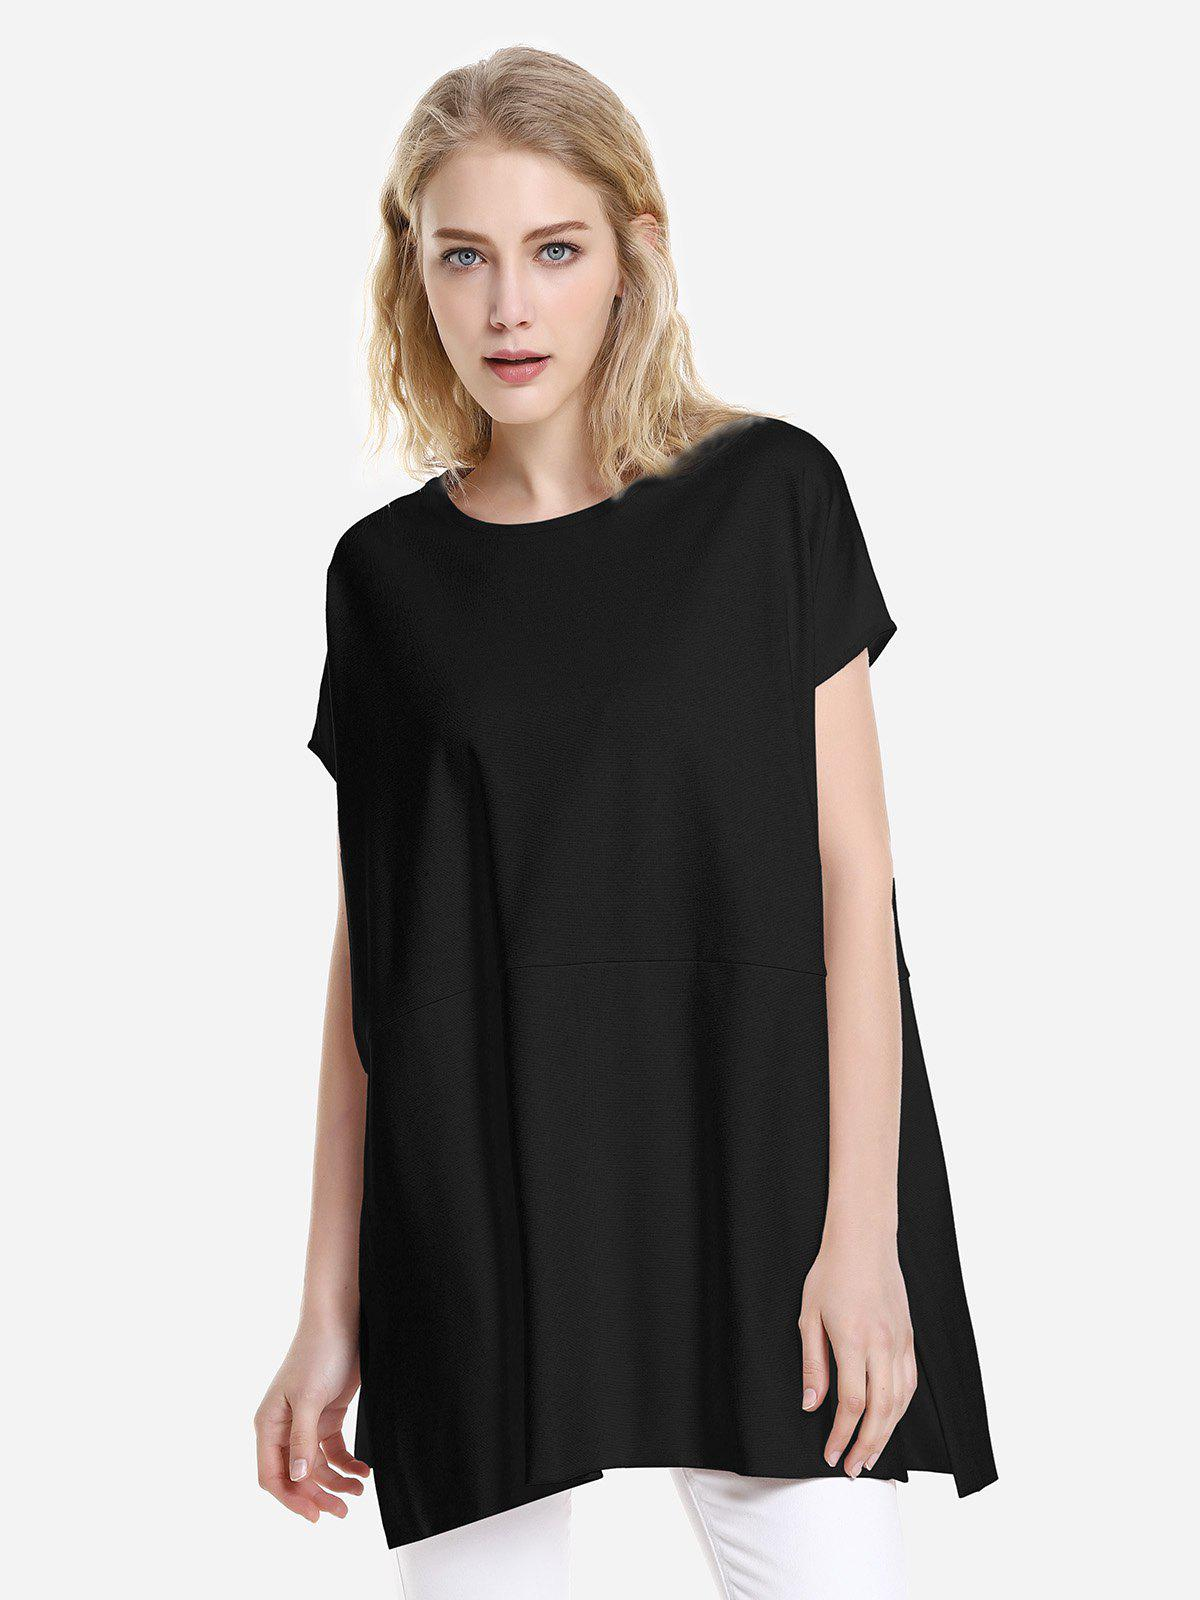 ZAN.STYLE Drop Shoulder Sleeve Top - BLACK S